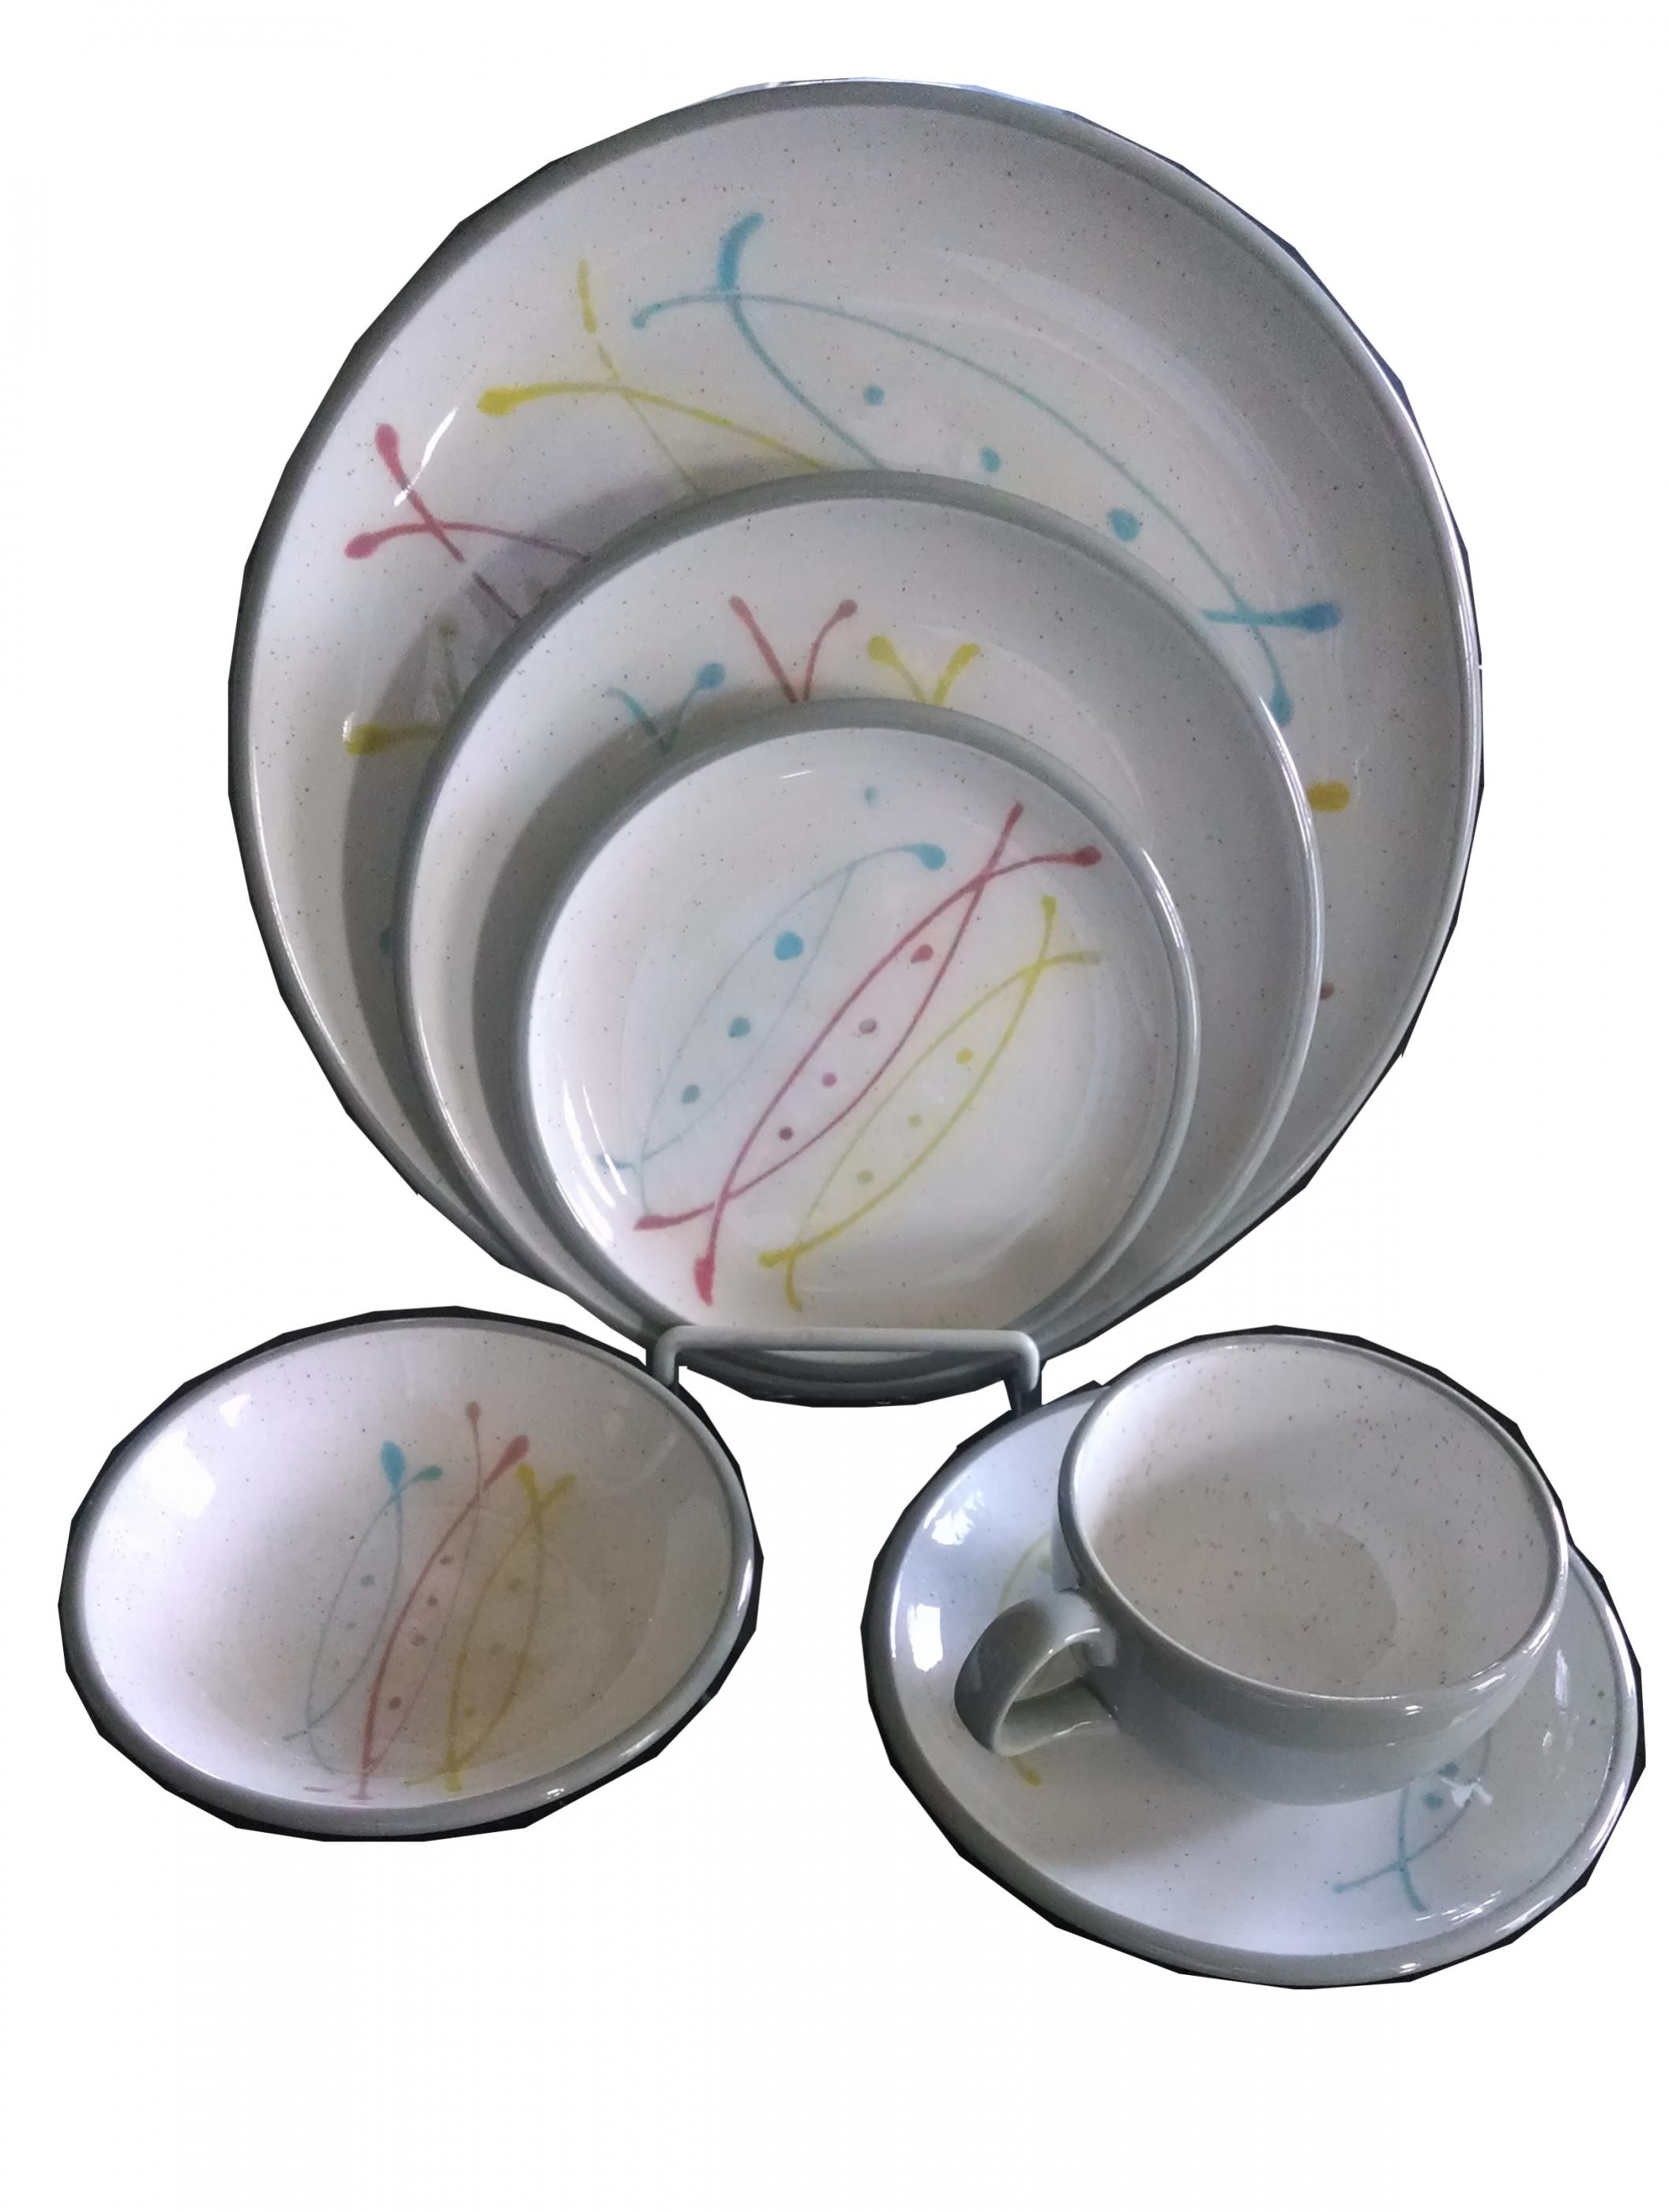 Atomic Age Dinnerware - Service For 8  sc 1 st  Modernism & Atomic Age Dinnerware - Service For 8 | Modernism